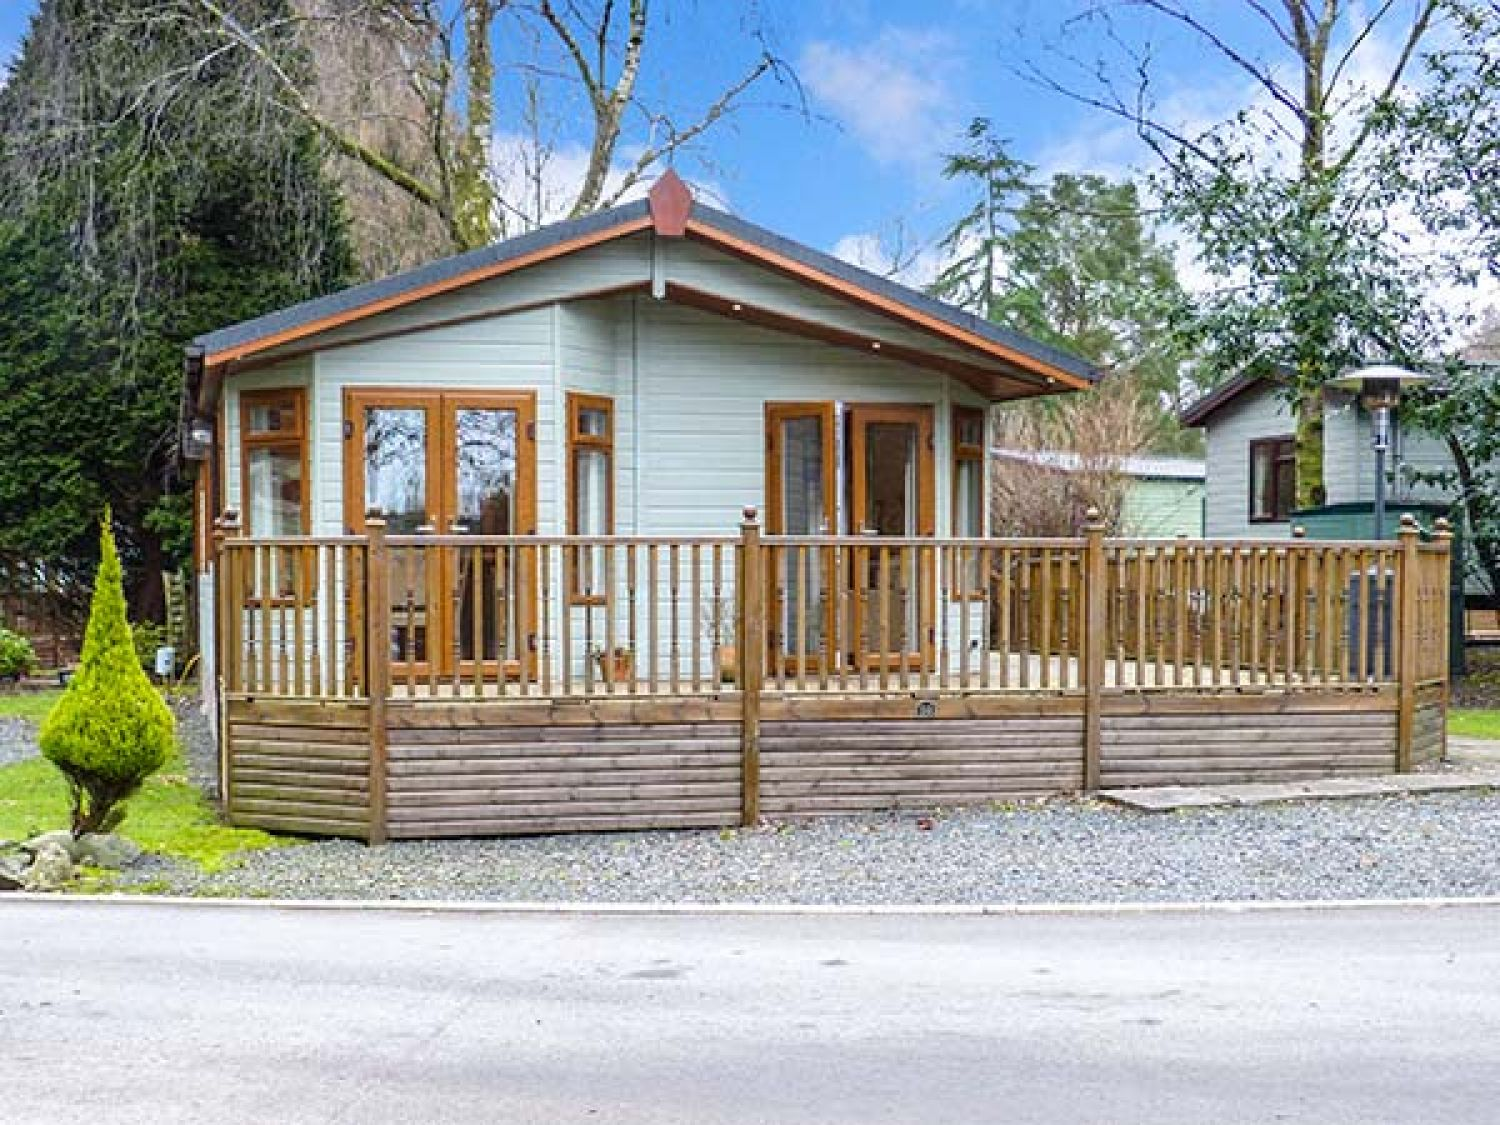 Tulip Lodge White Cross Bay Troutbeck Bridge The Lake District And Cumbria Self Catering